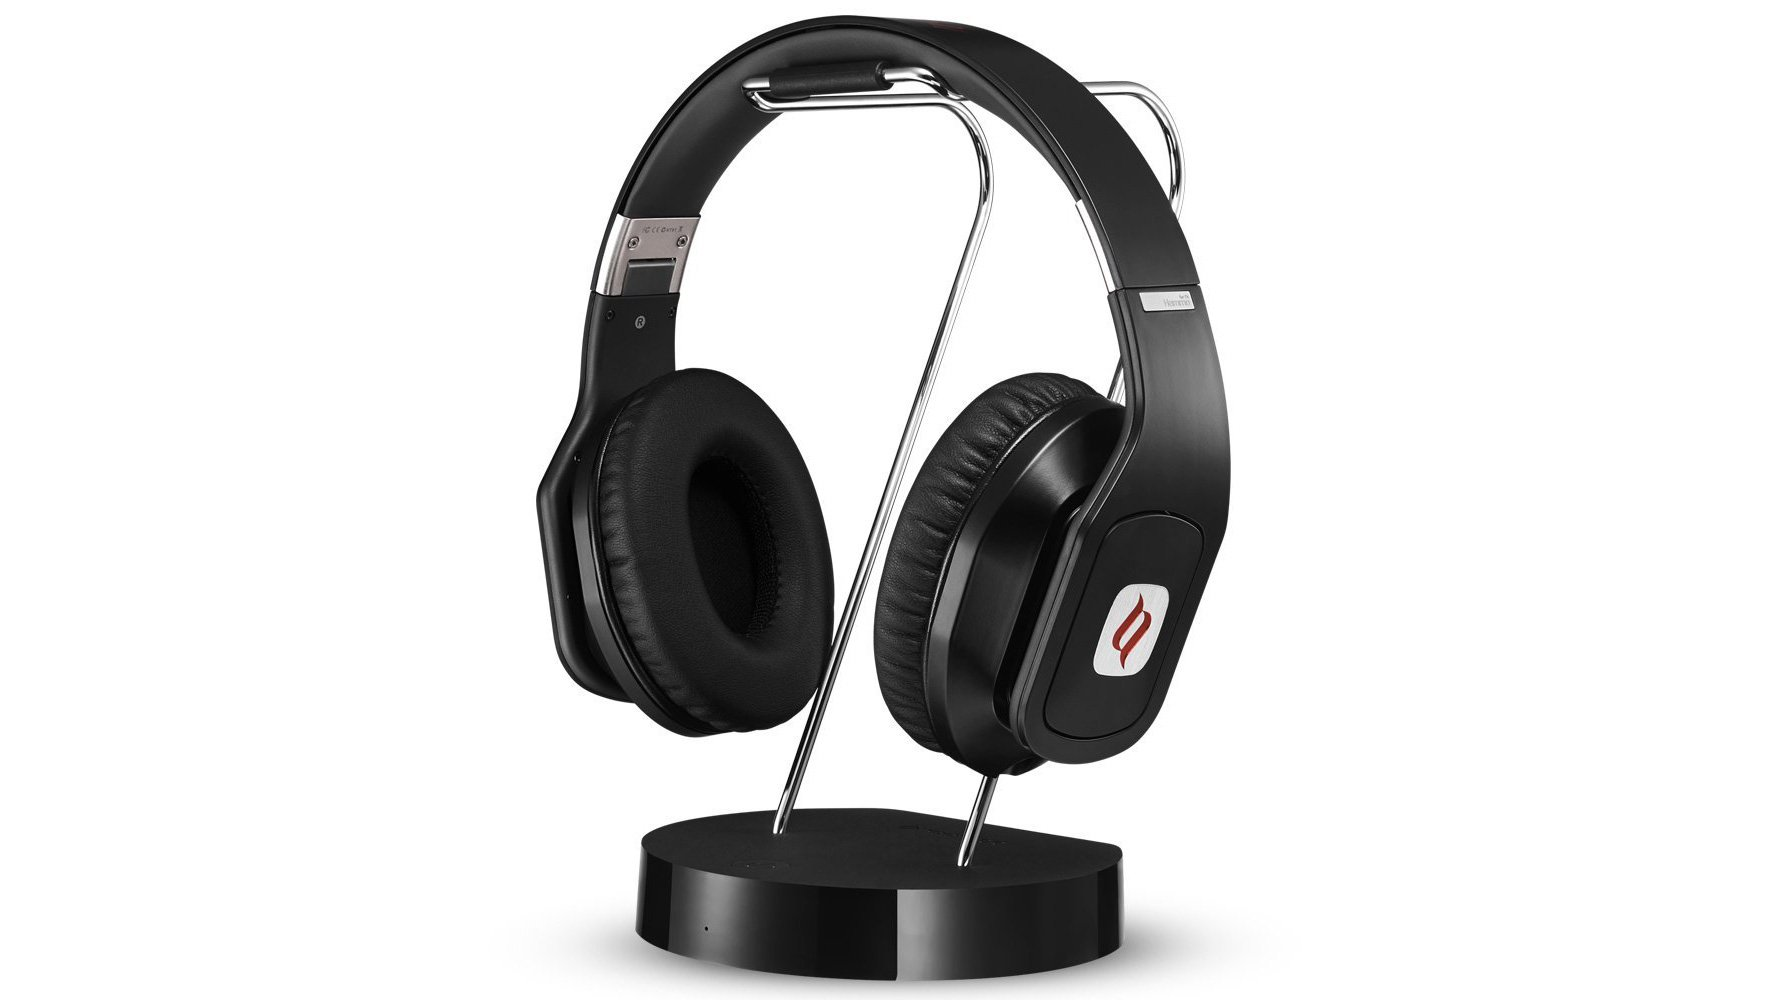 The Hammo TV is an impressive set of wireless headphones that connects via  Bluetooth to your smartphone or via its wireless docking station b0e64be164414